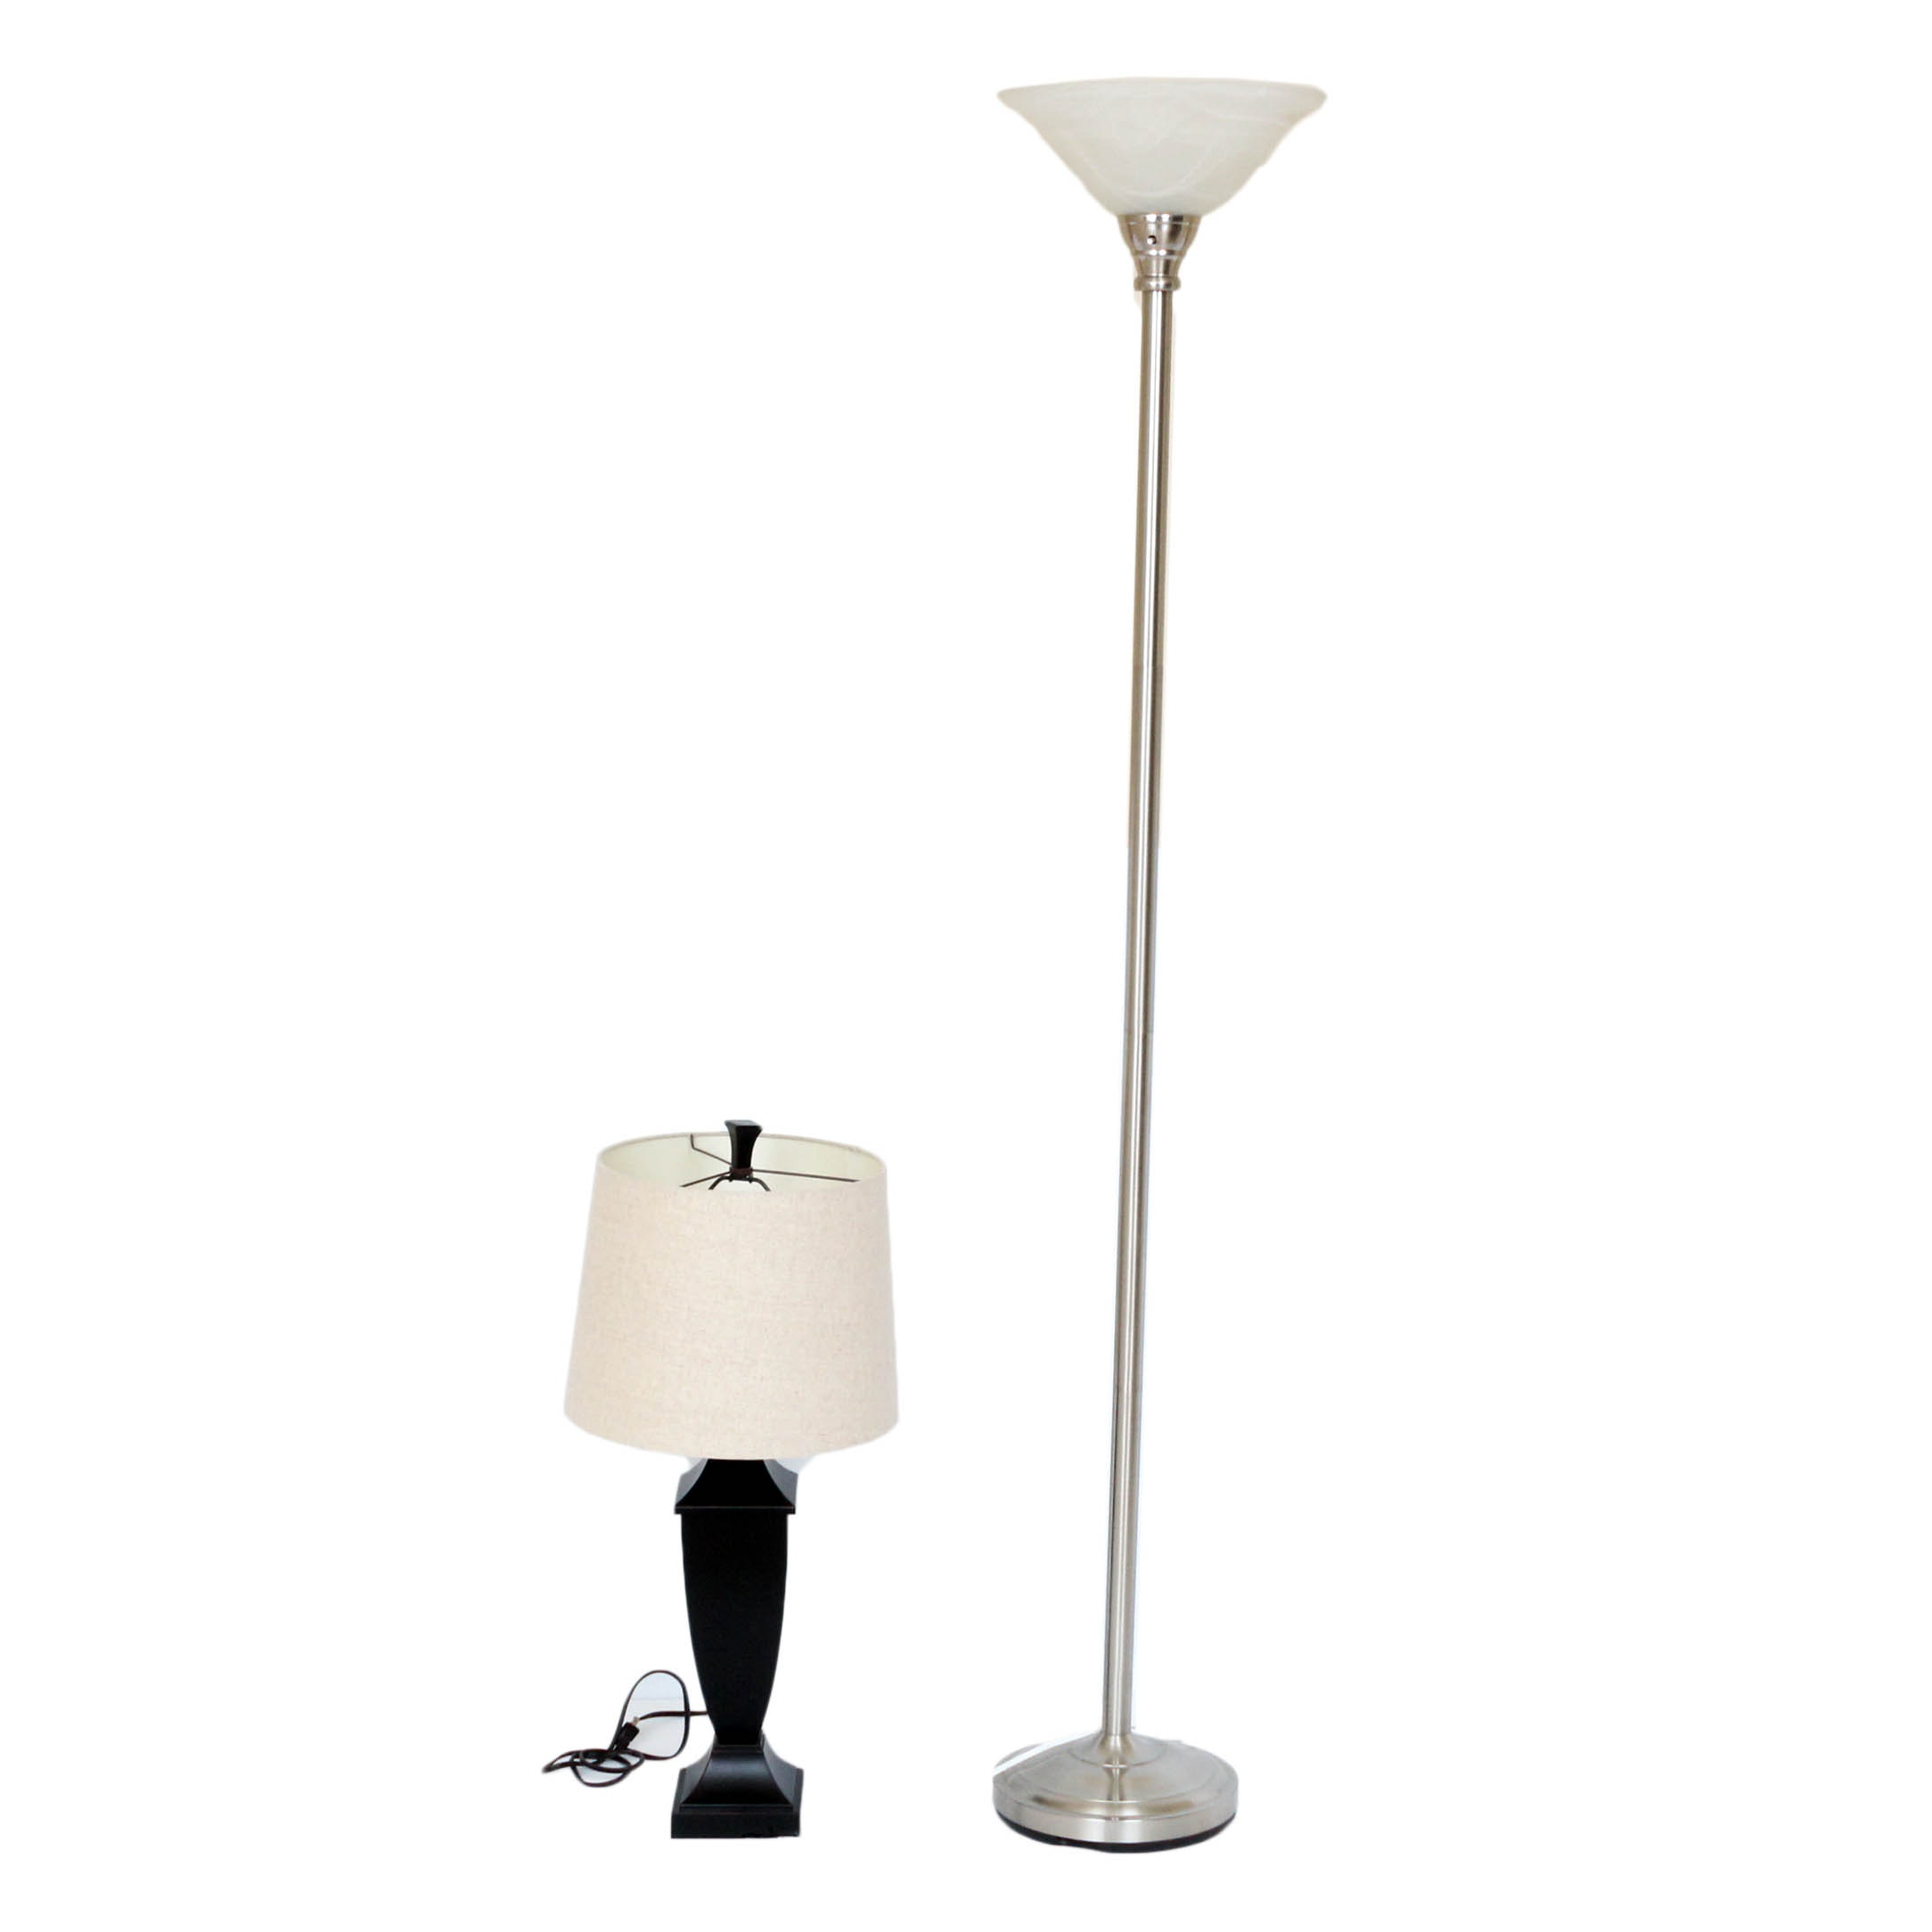 Pair of Contemporary Lamps